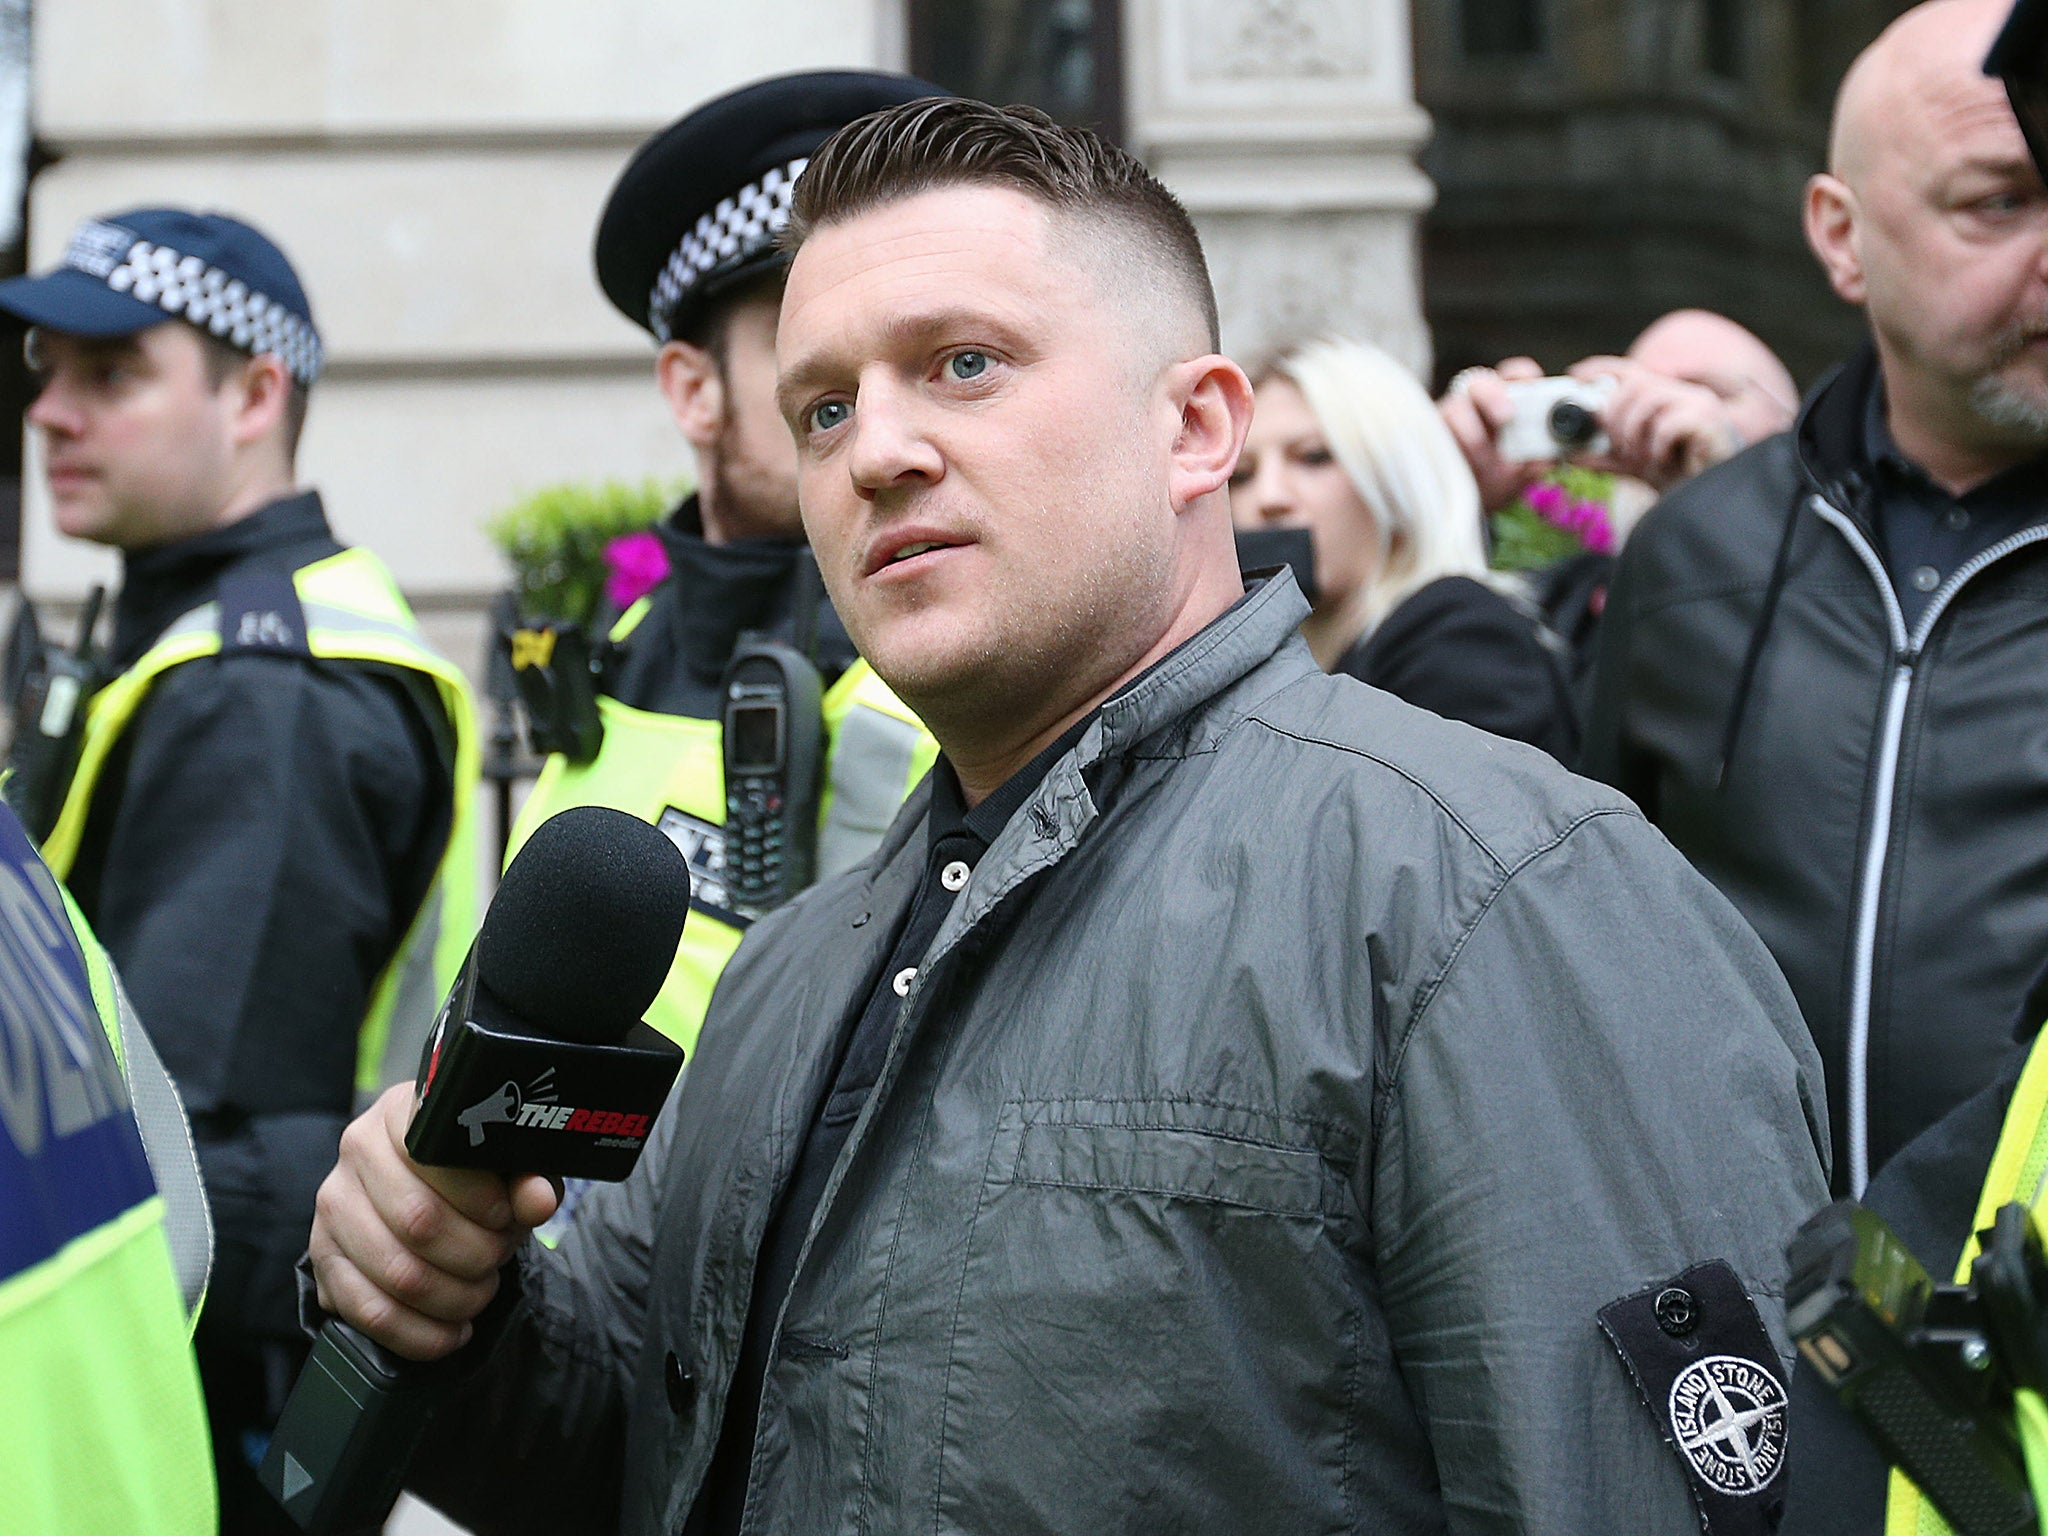 Finsbury Park Terrorer Turned To Violence By Far Right Posts